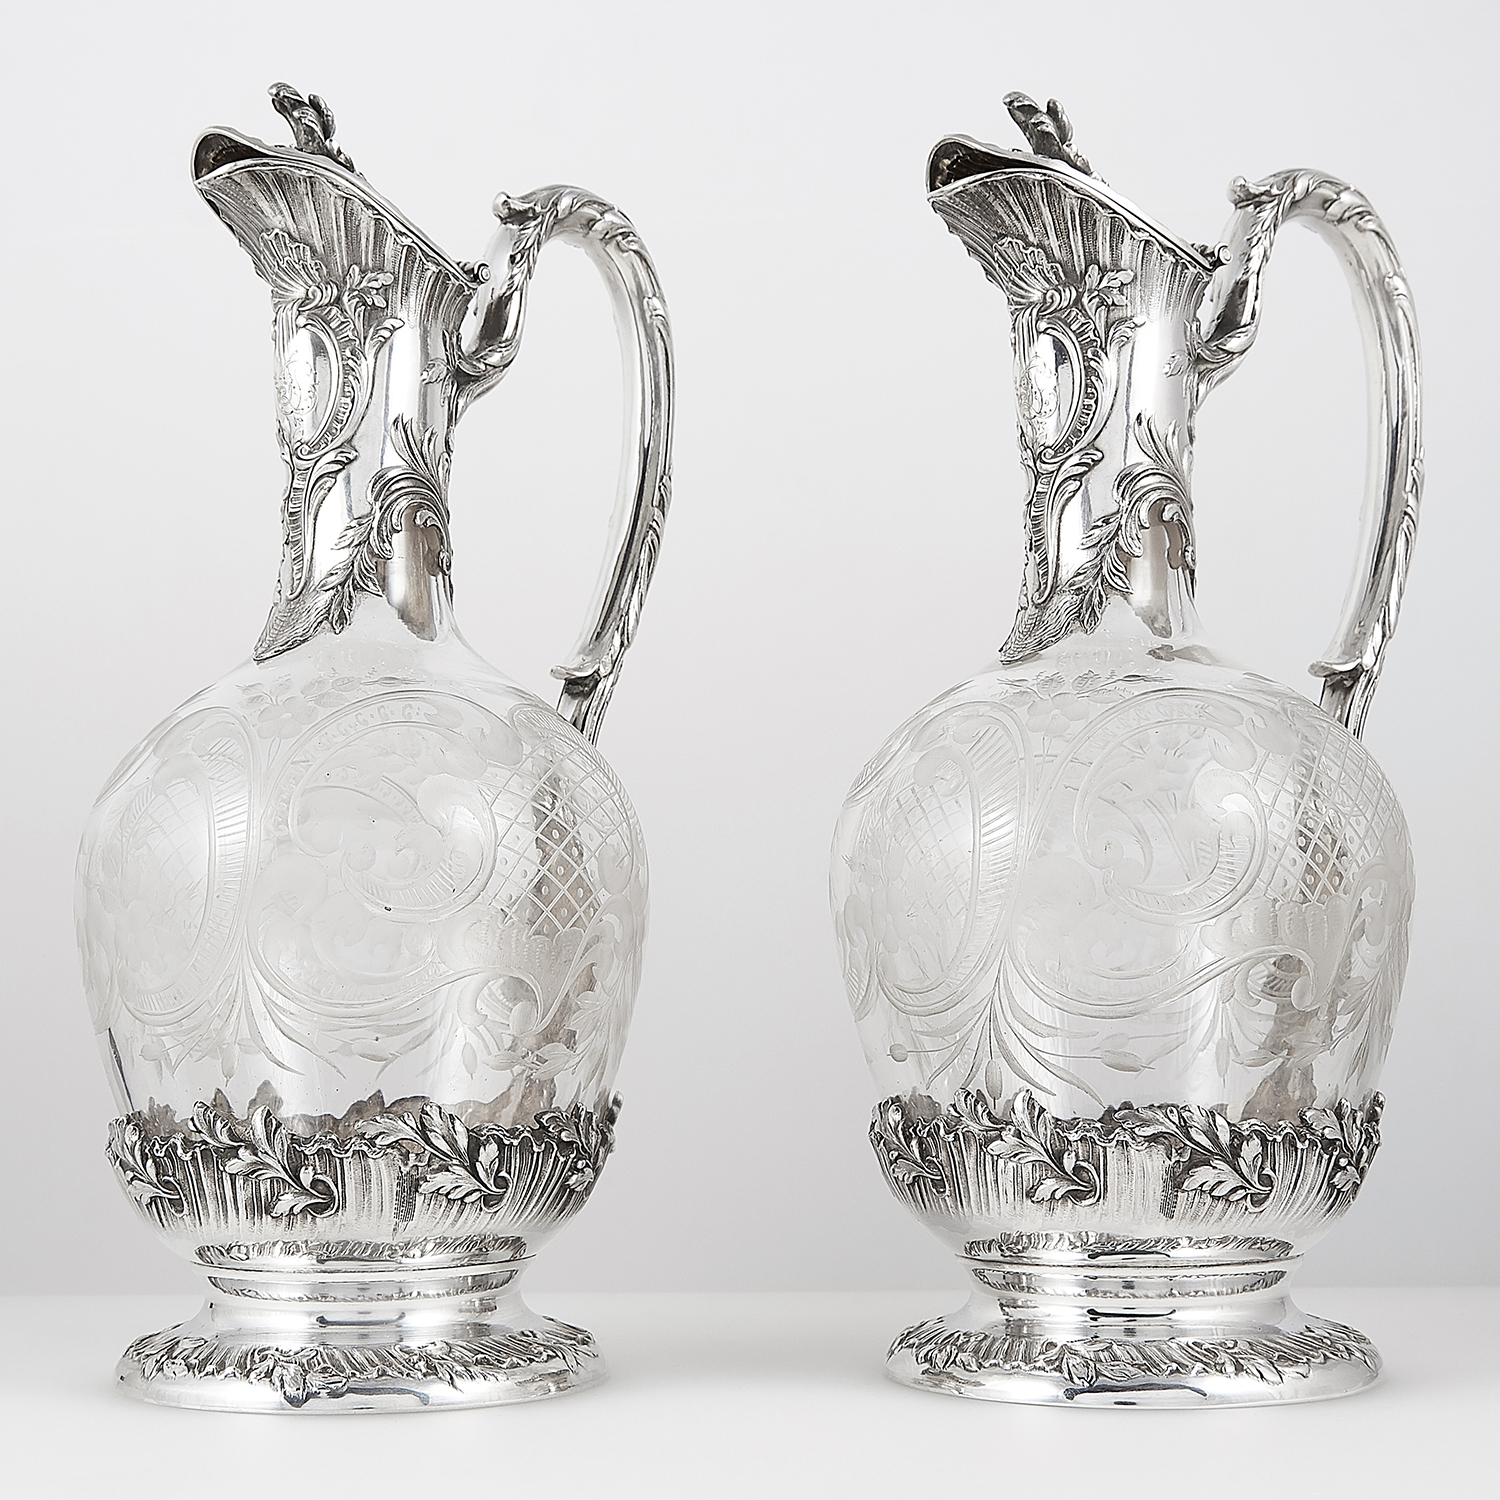 PAIR OF ANTIQUE FRENCH SILVER MOUNTED CUT GLASS CLARET JUGS, TETARD FRERES CIRCA 1890 the bulbous